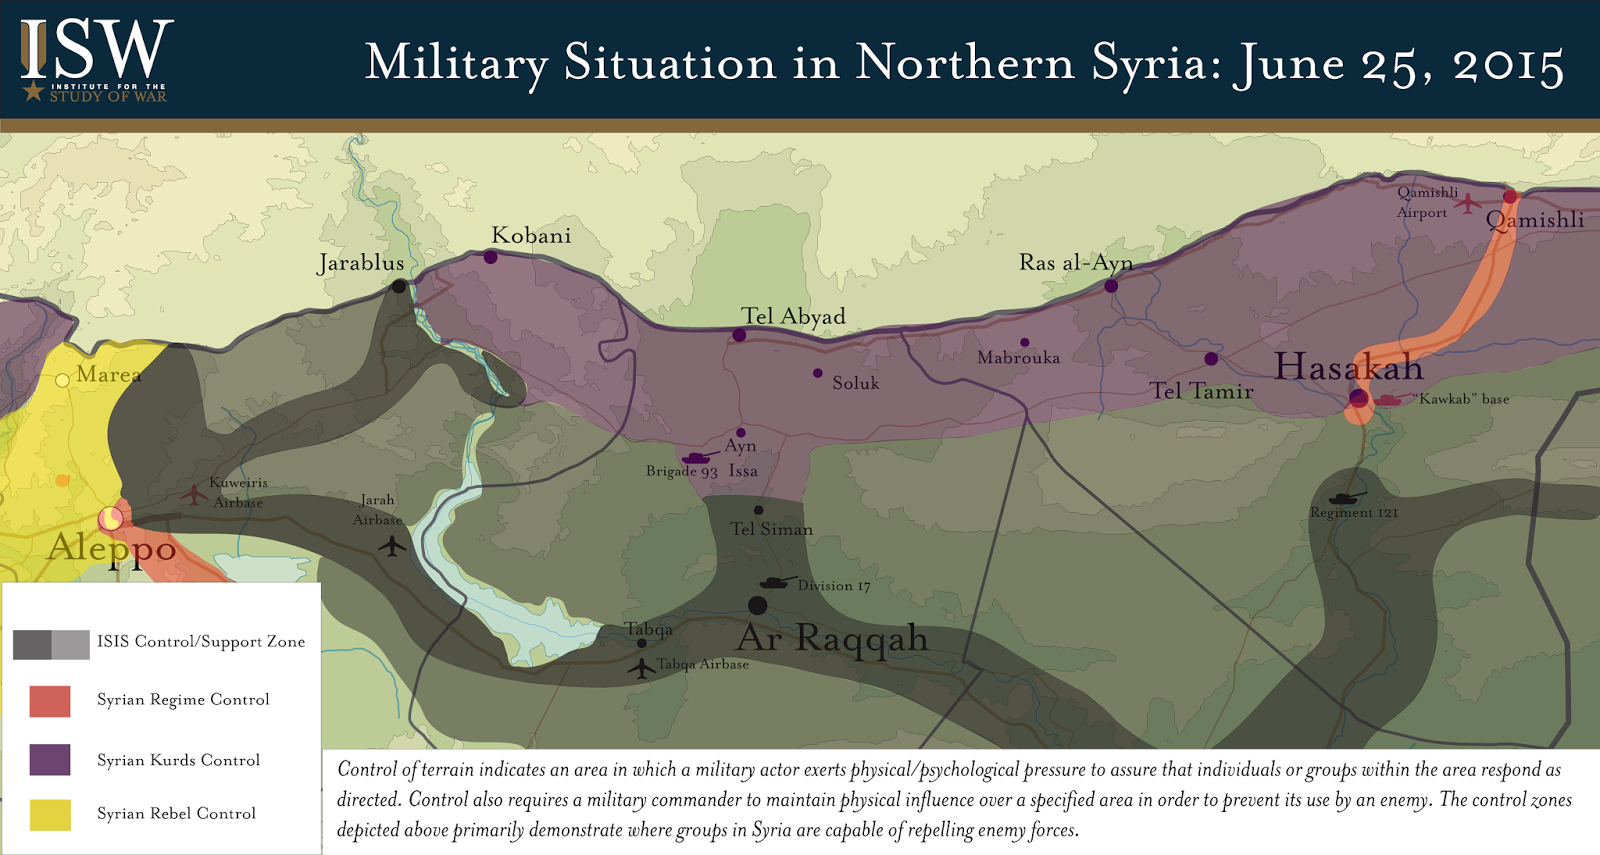 Military-Situation-in-N-Syria-25-JUN-2015